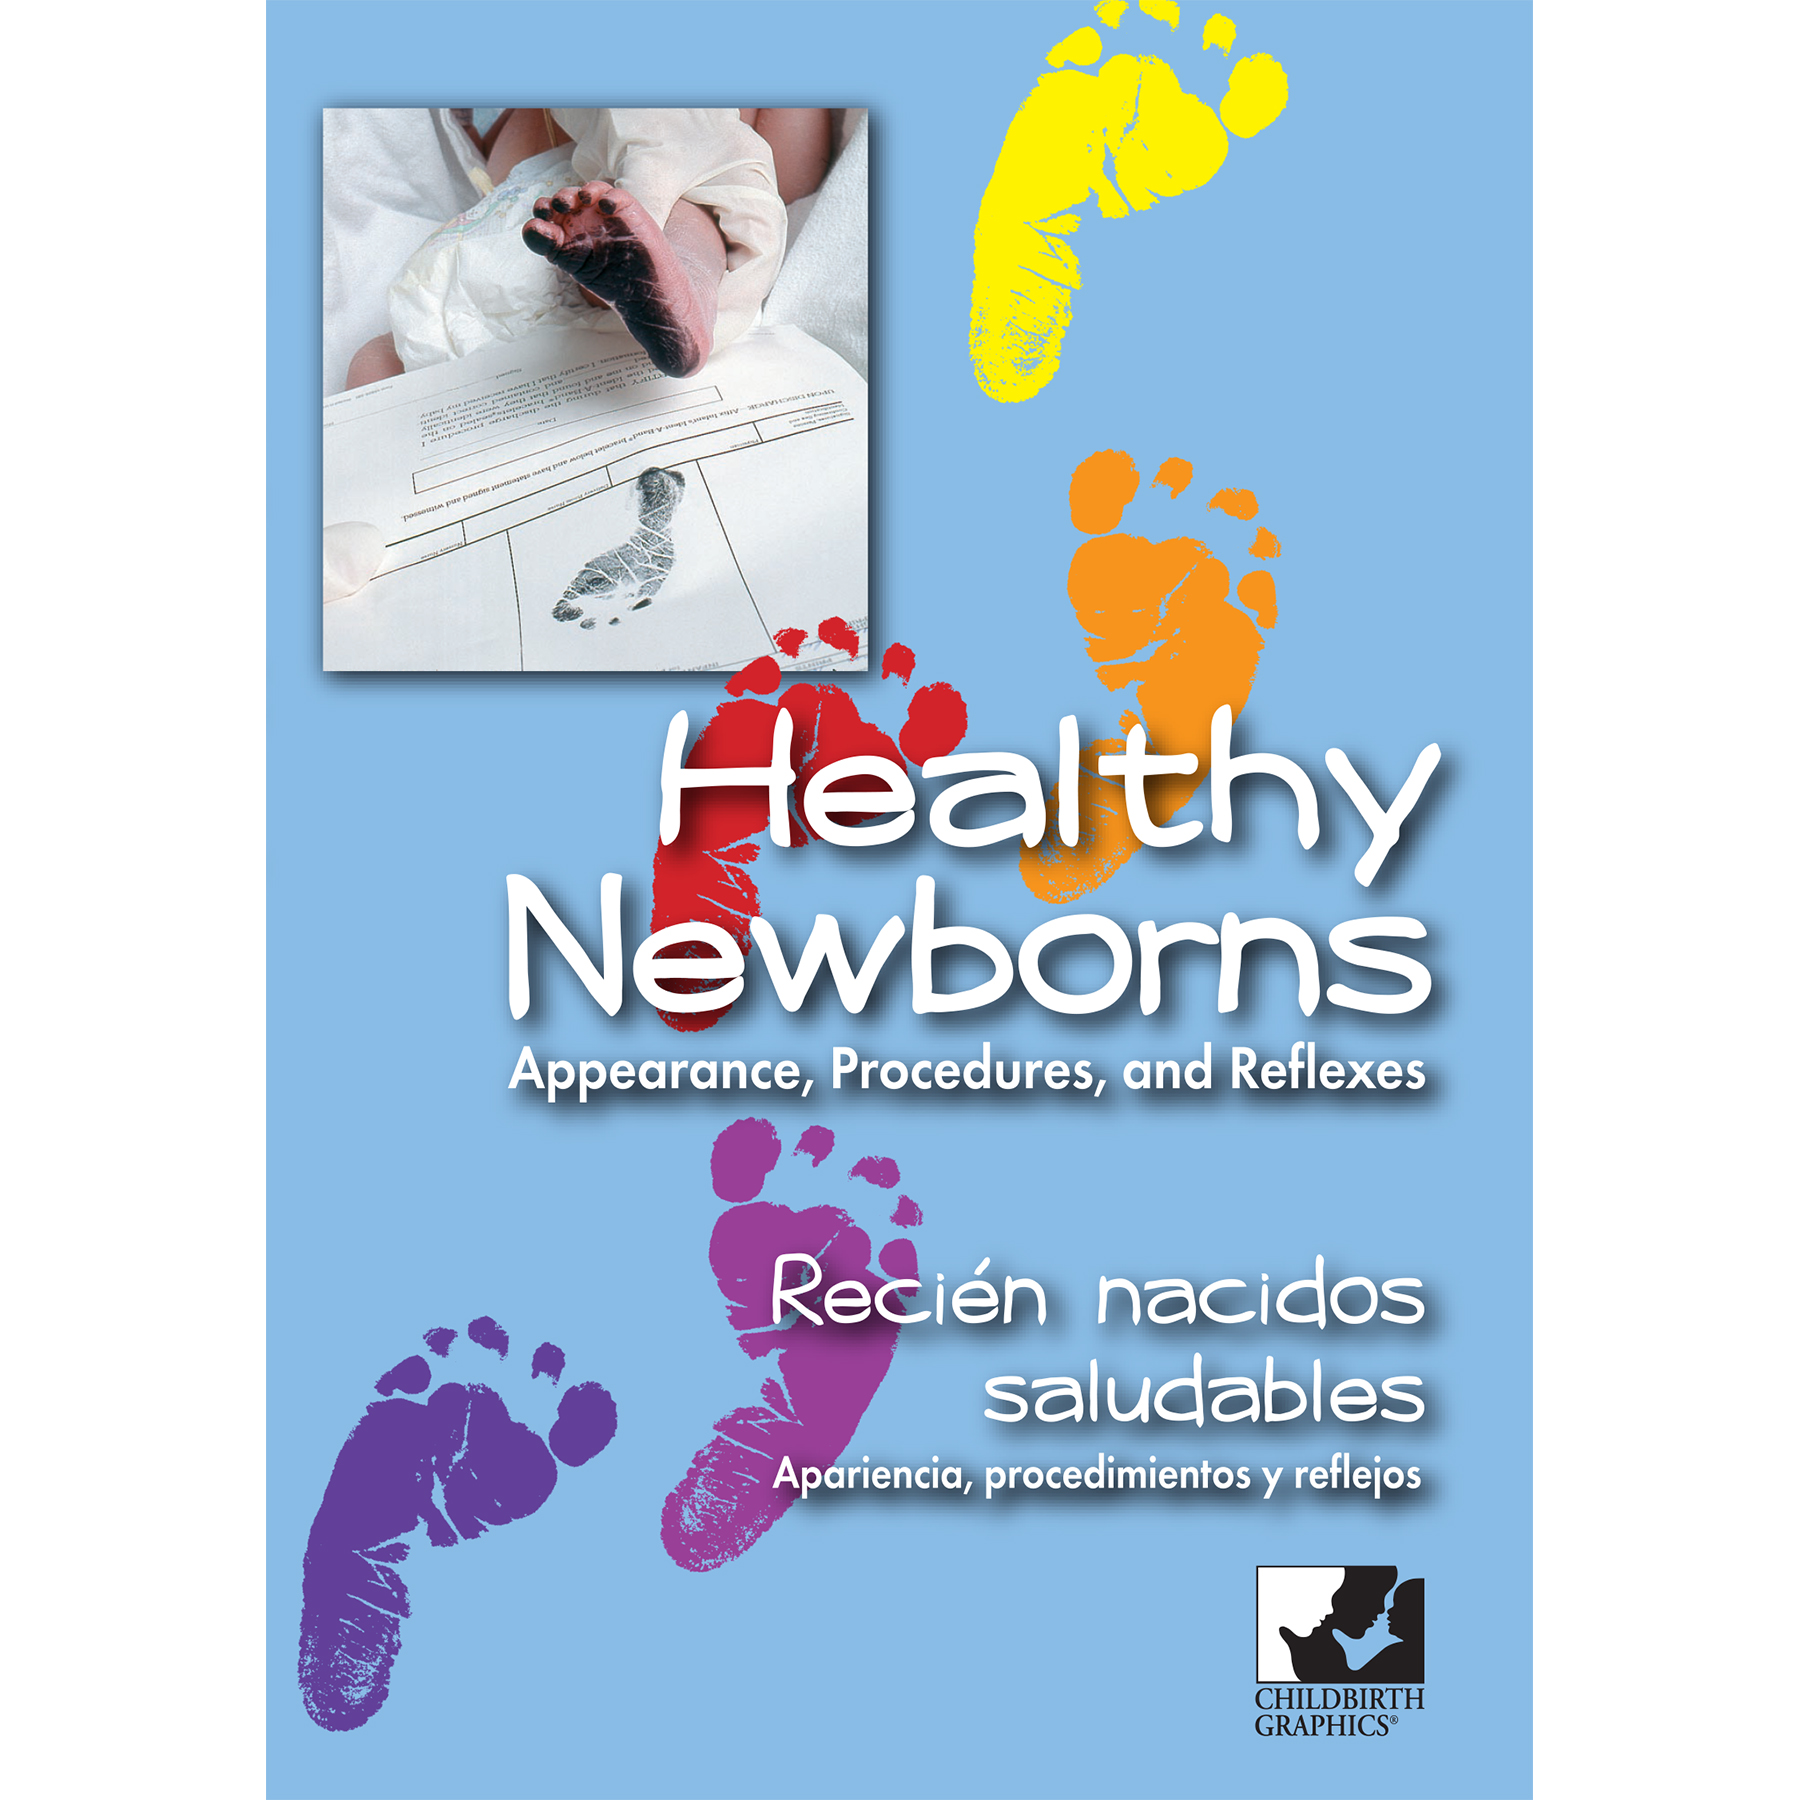 Healthy Newborns English and Spanish DVD cover, baby footprints,appearance procedures reflexes, Childbirth Graphics, 48652